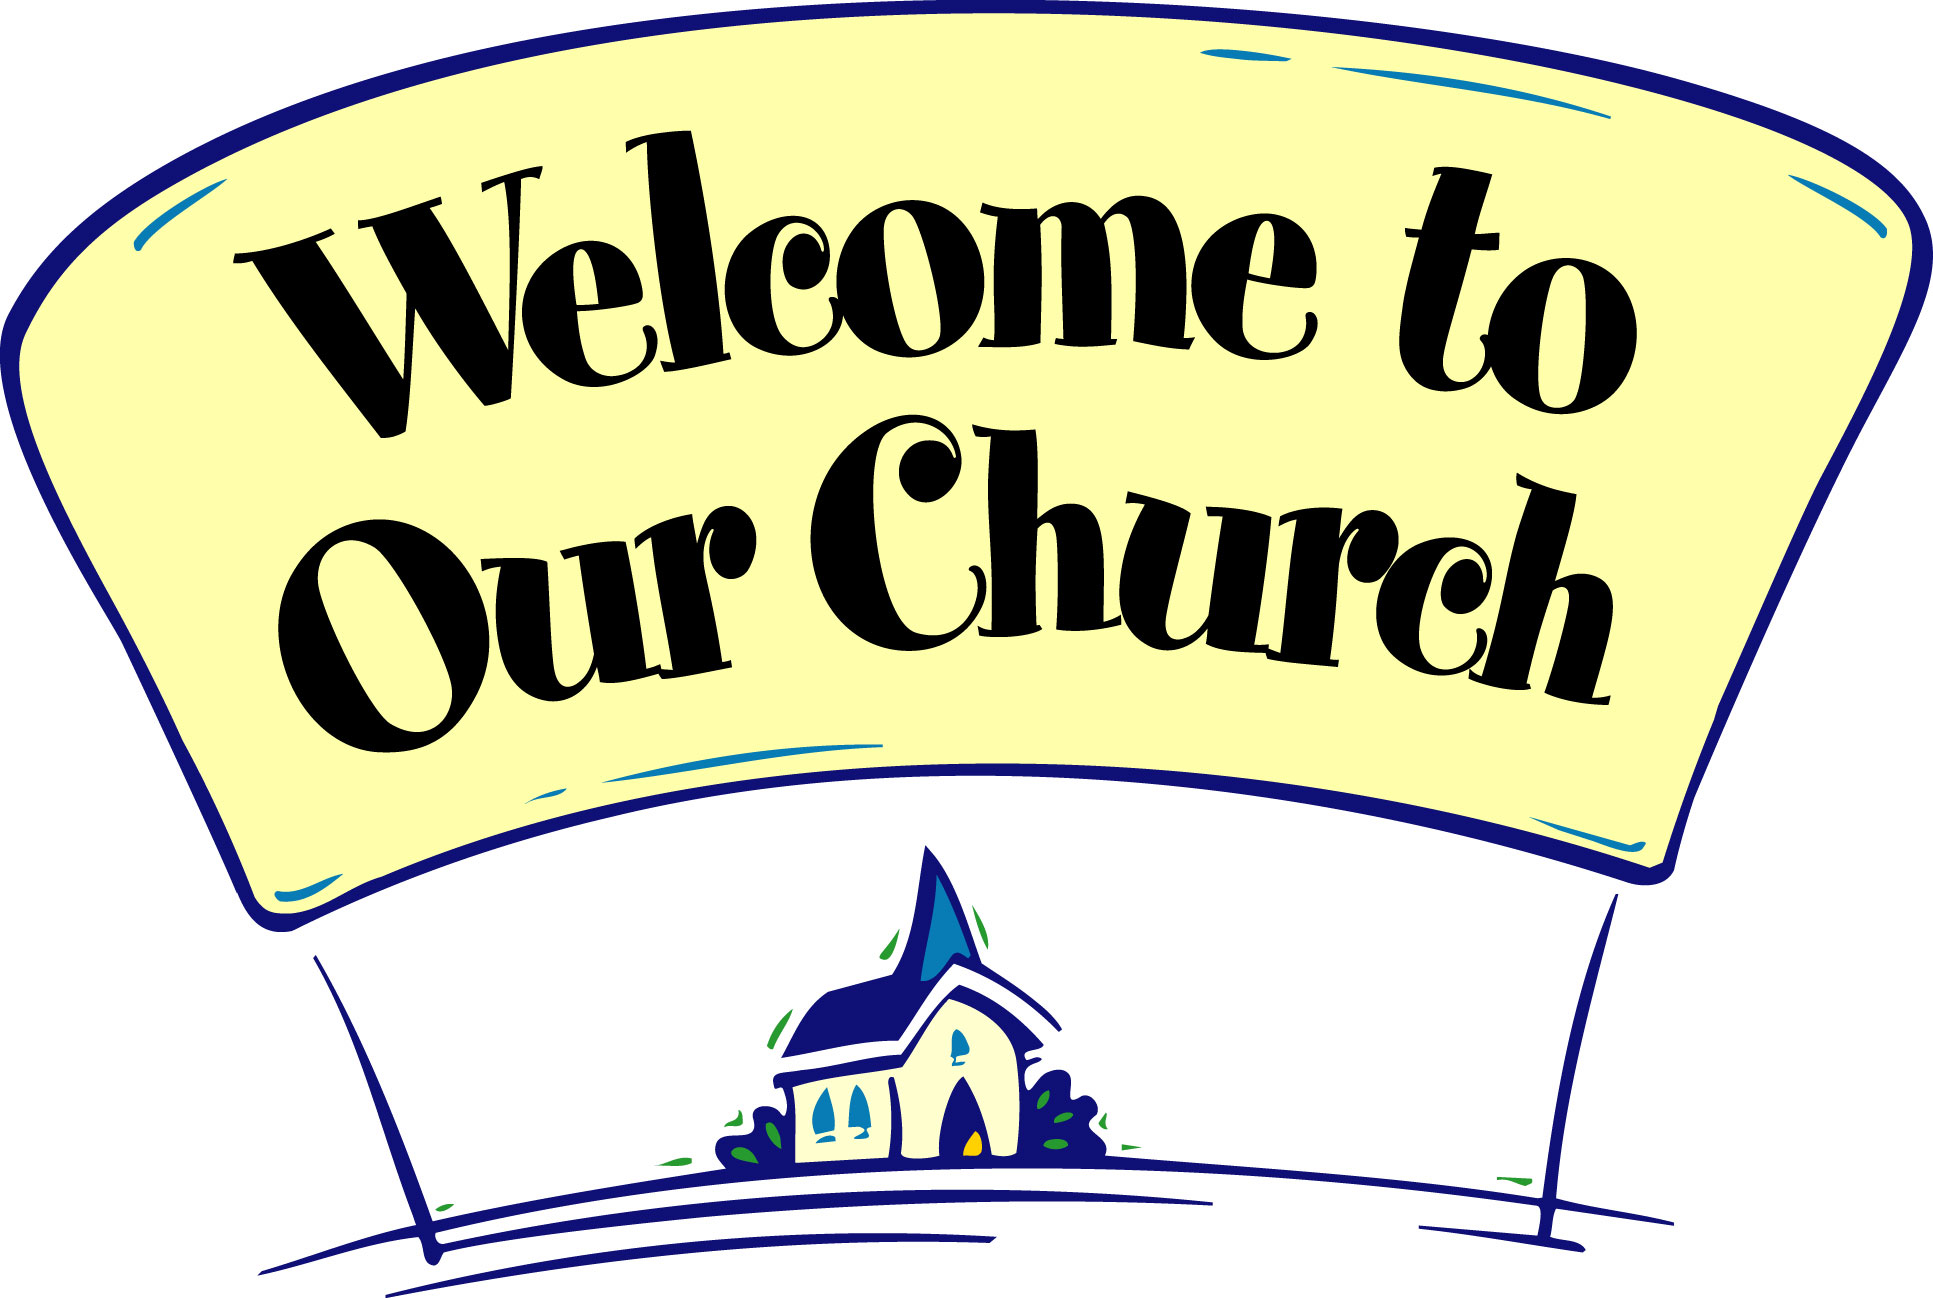 Images clipartbarn . Free clipart welcome to church patriotic